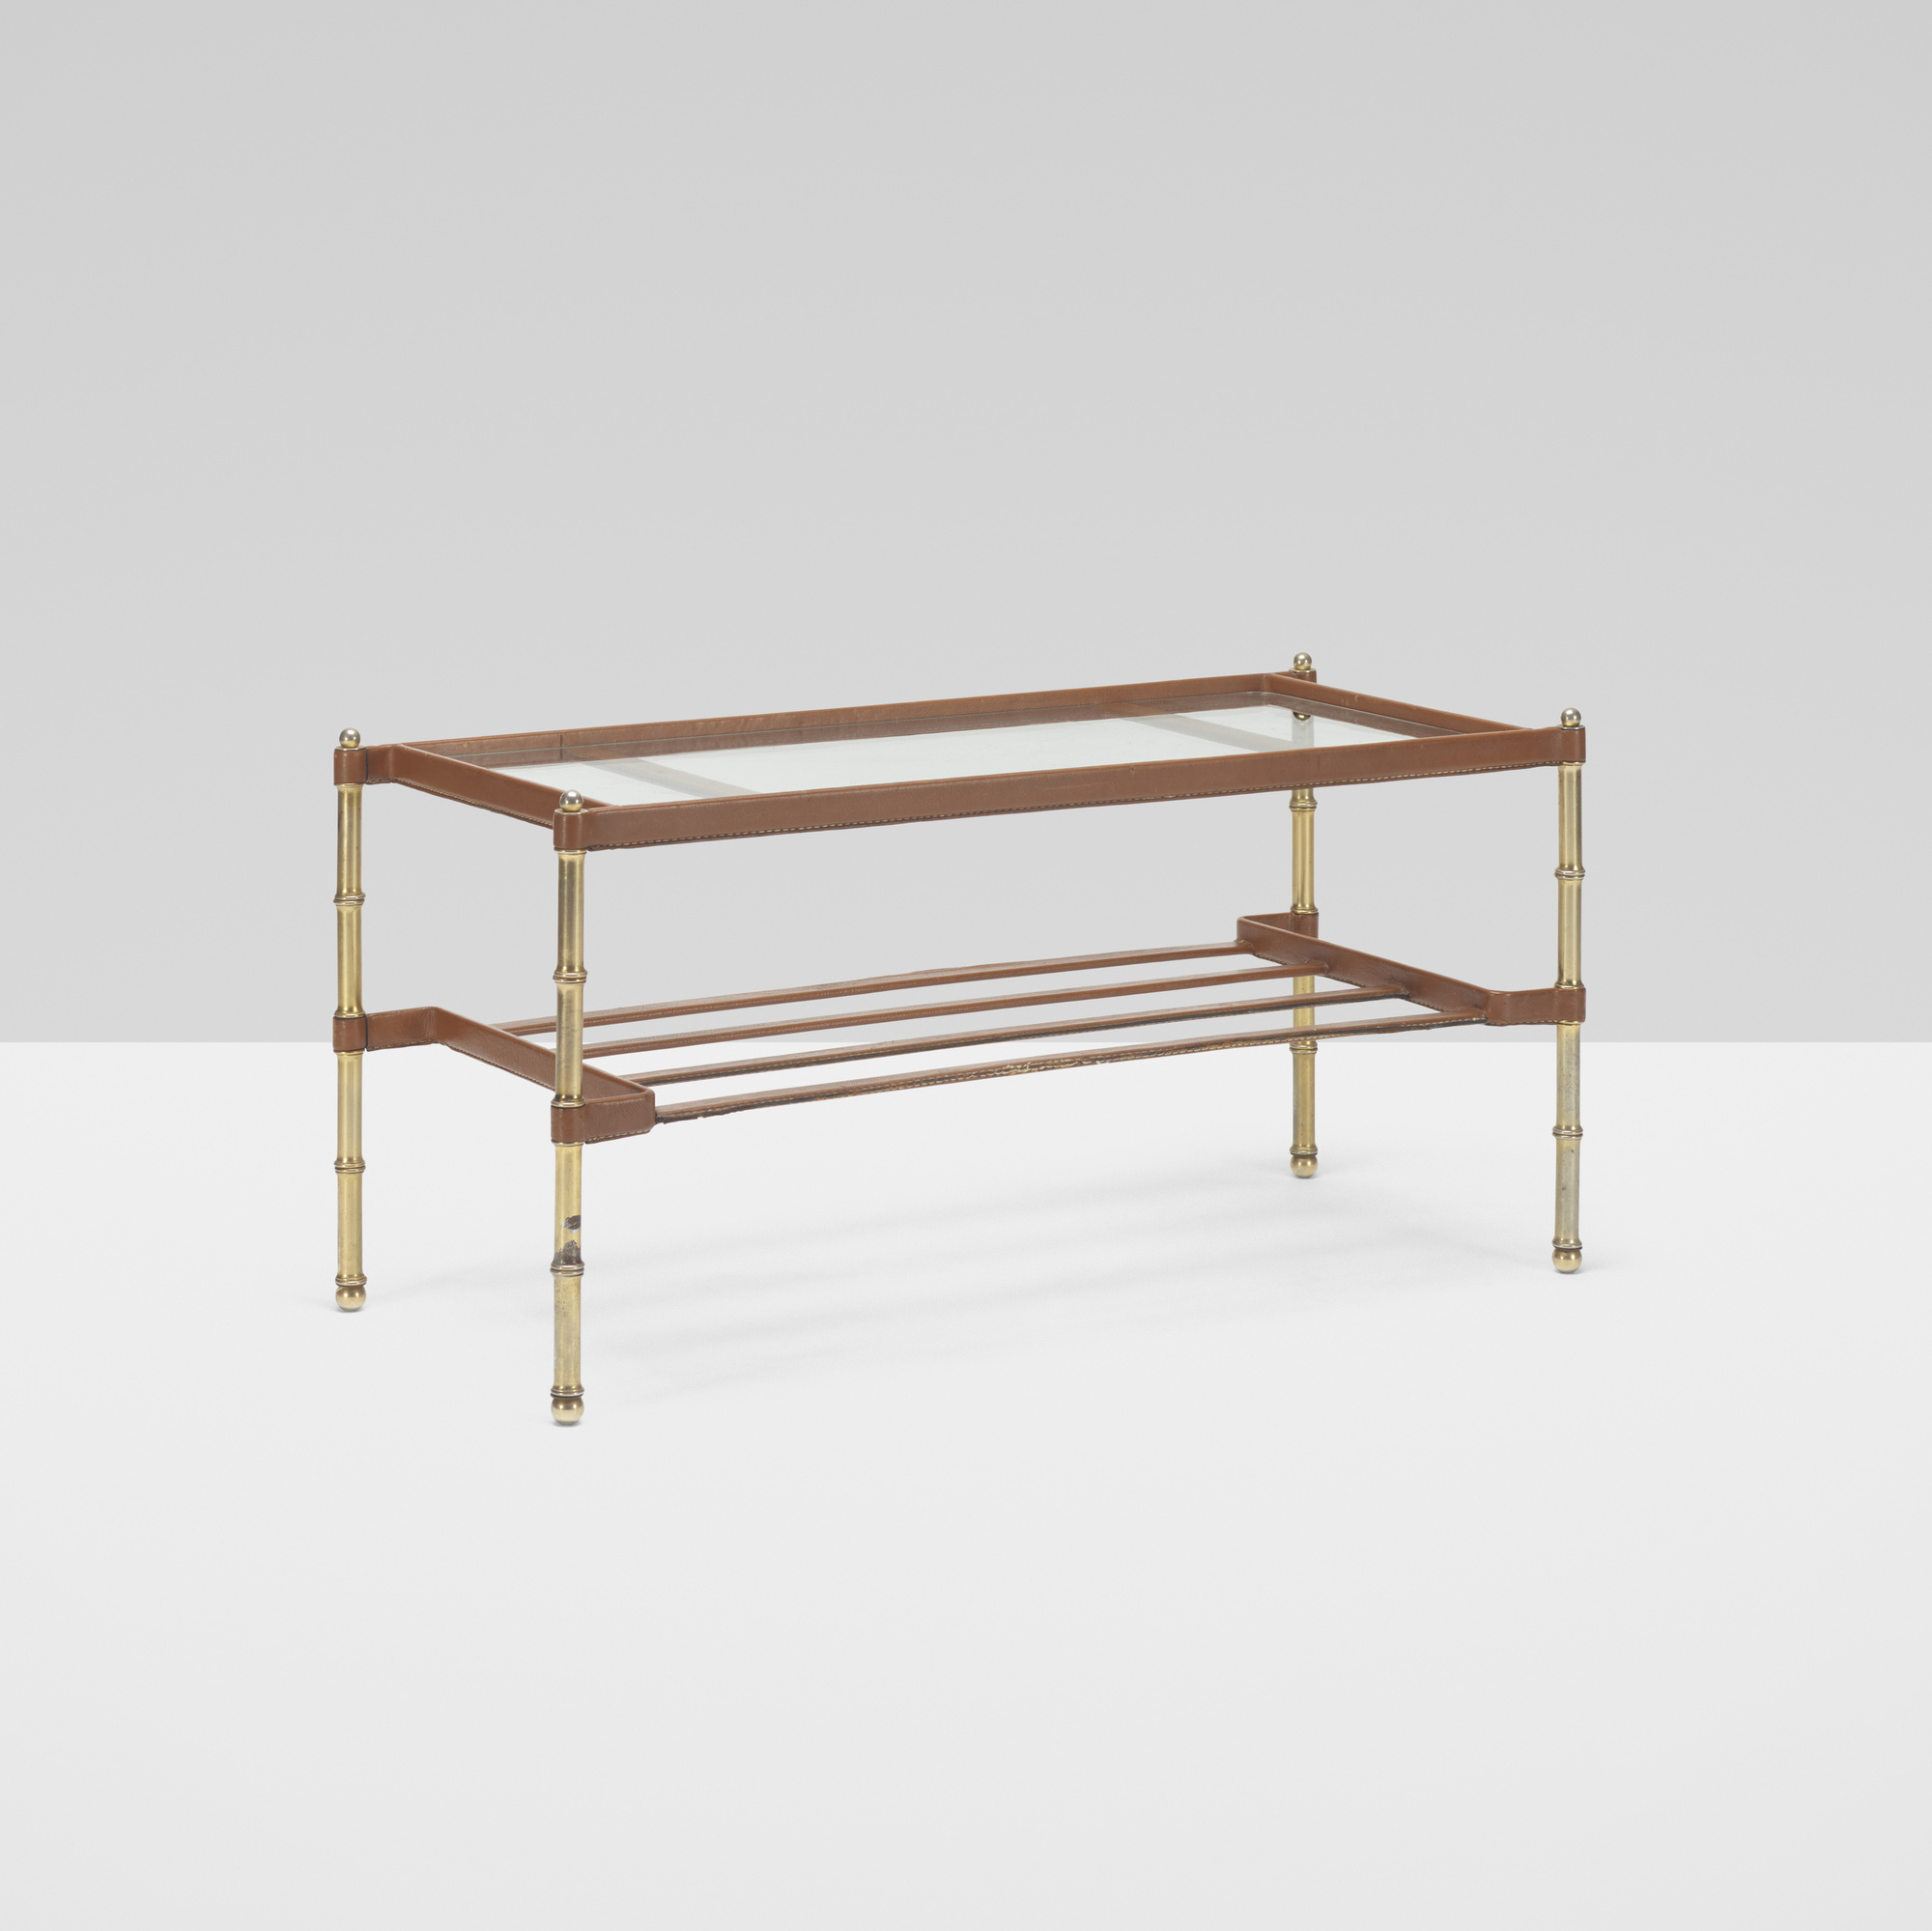 294: Jacques Adnet / coffee table (1 of 2)